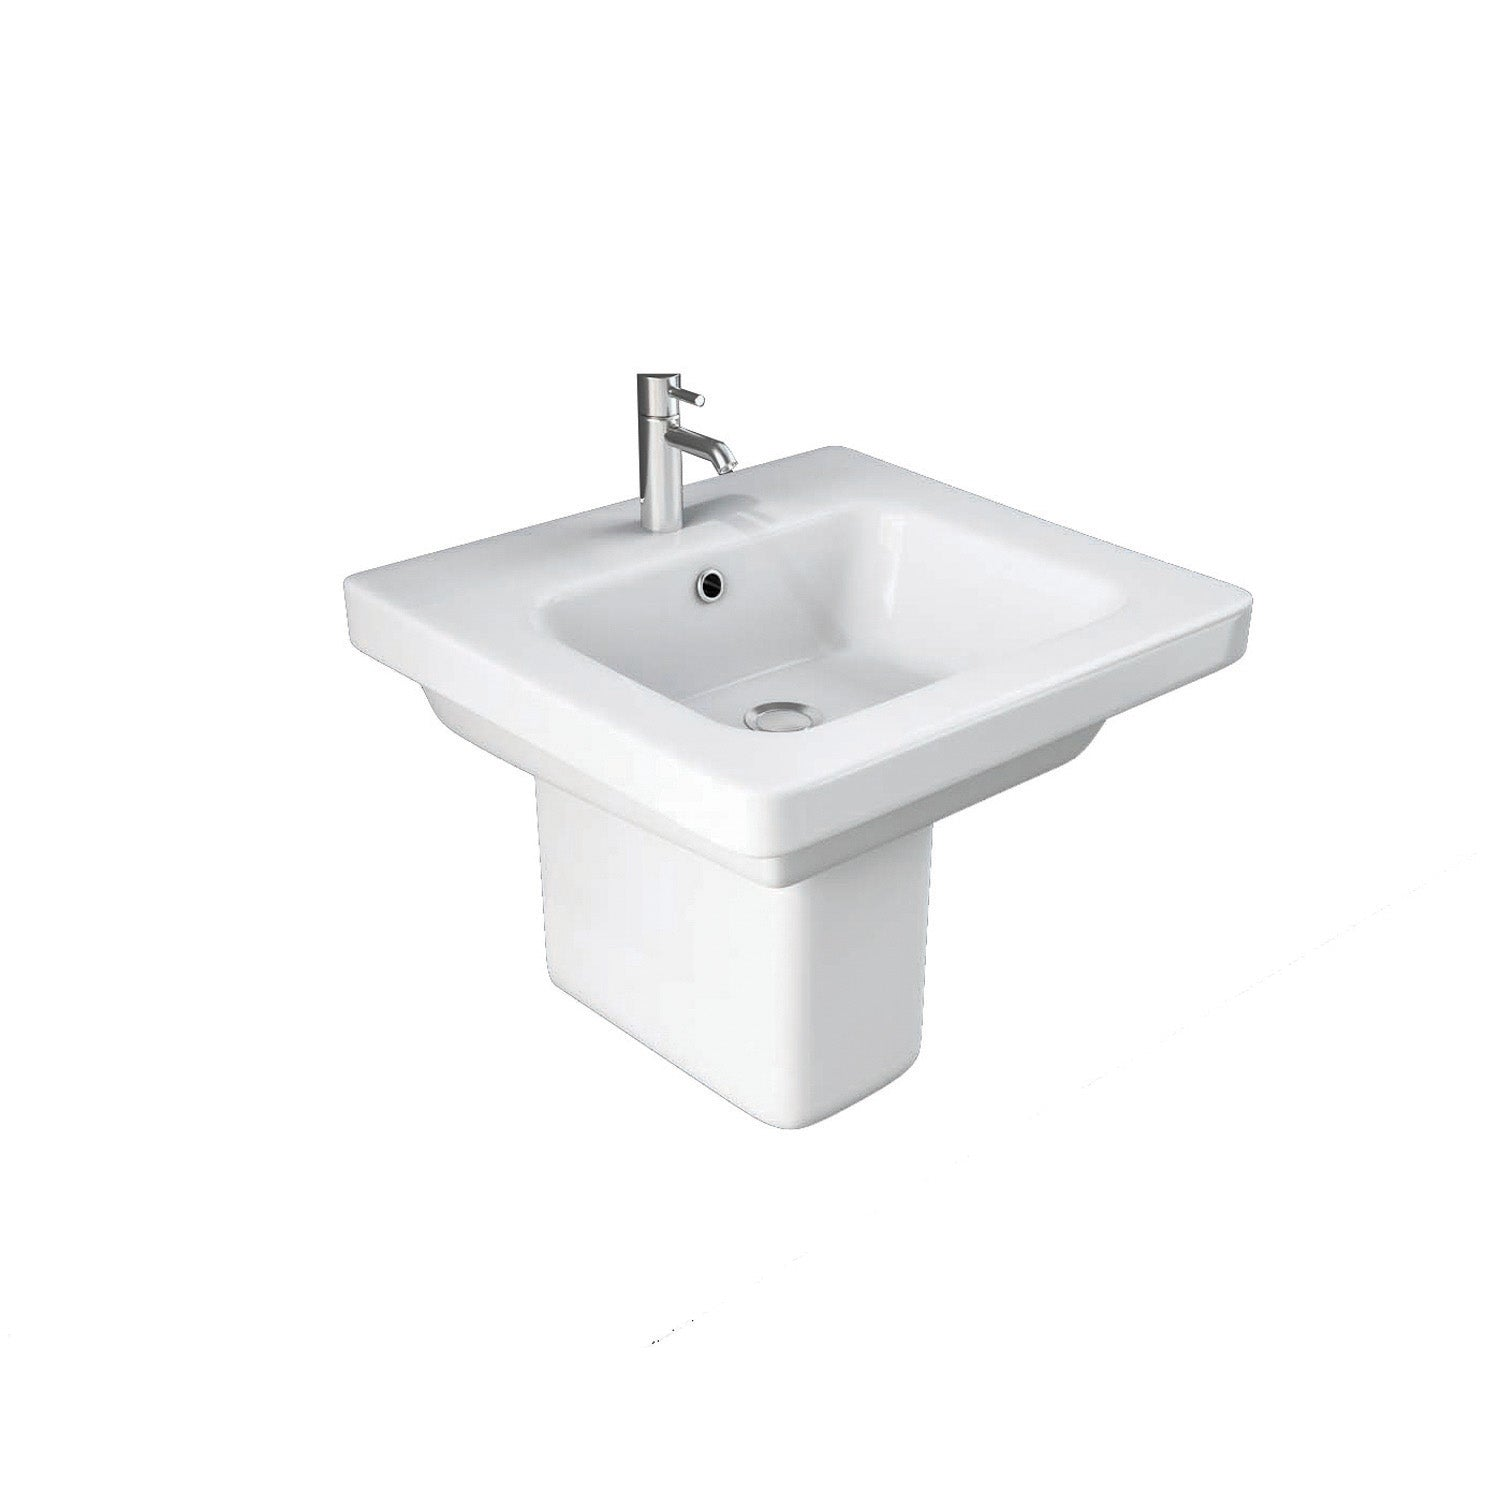 550mm Vesta Wall Hung Basin on a white background